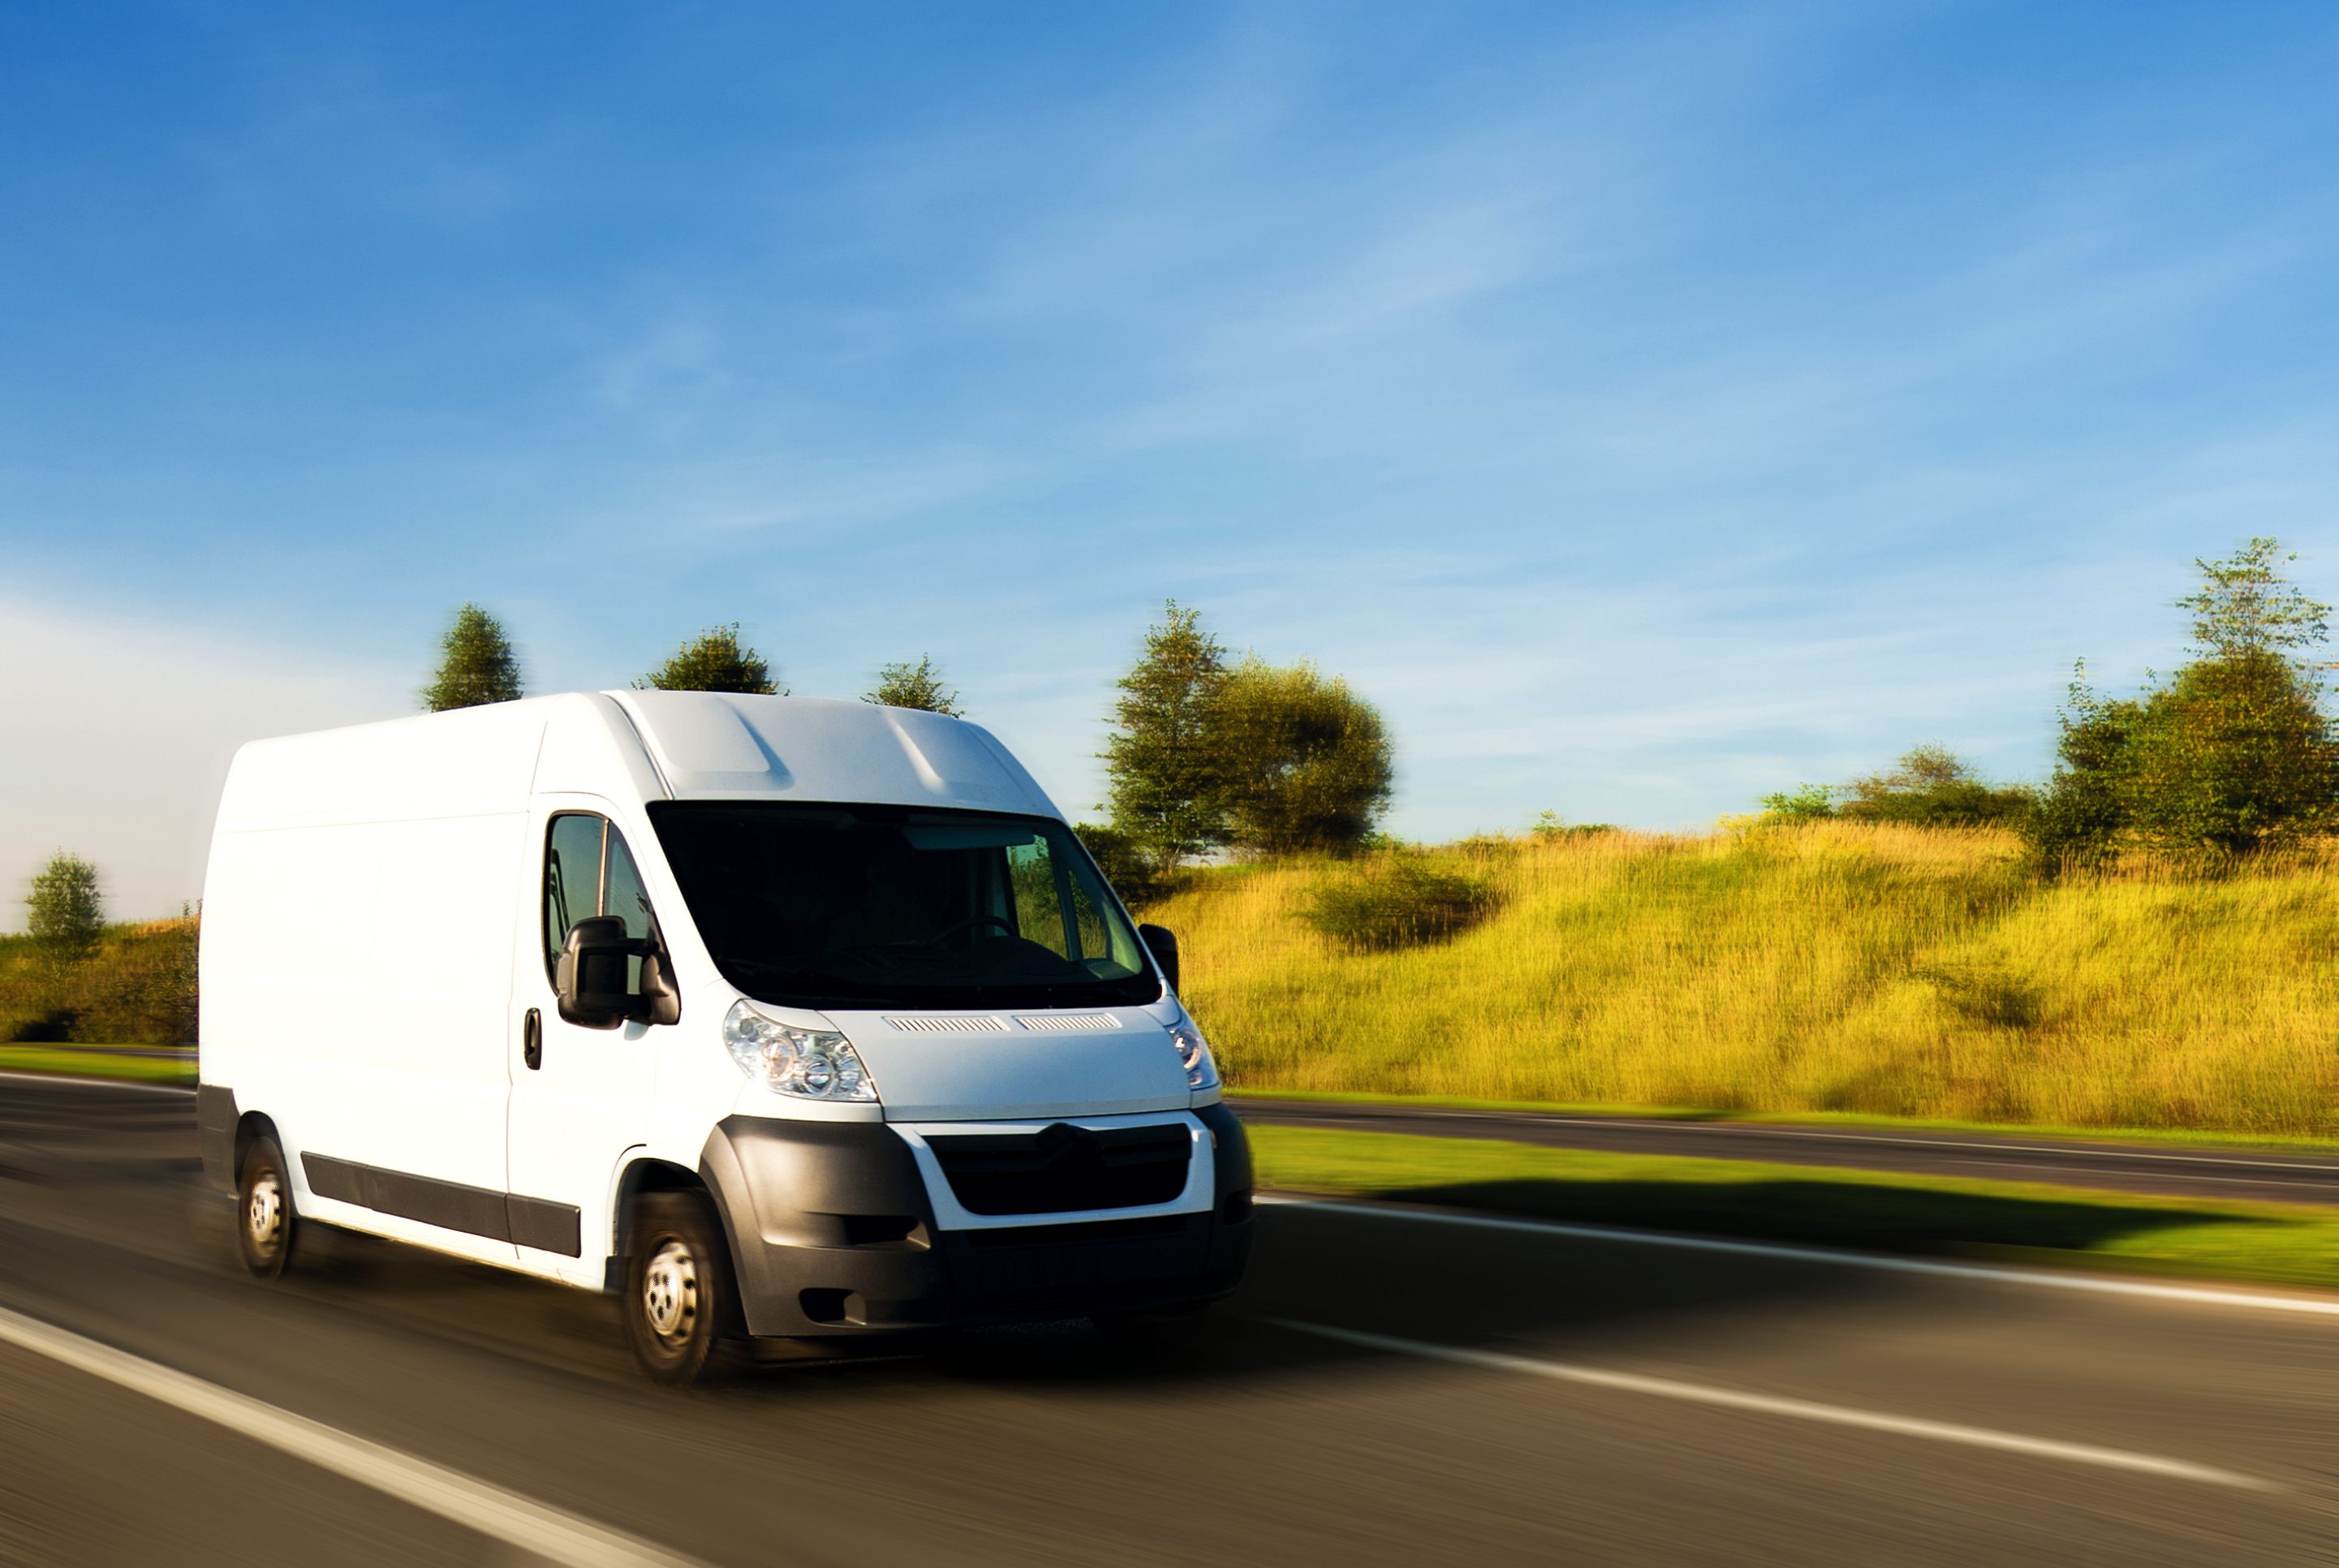 If you use your vehicle as part of your business, you'll need to get commercial  auto insurance–even if you already have a personal policy